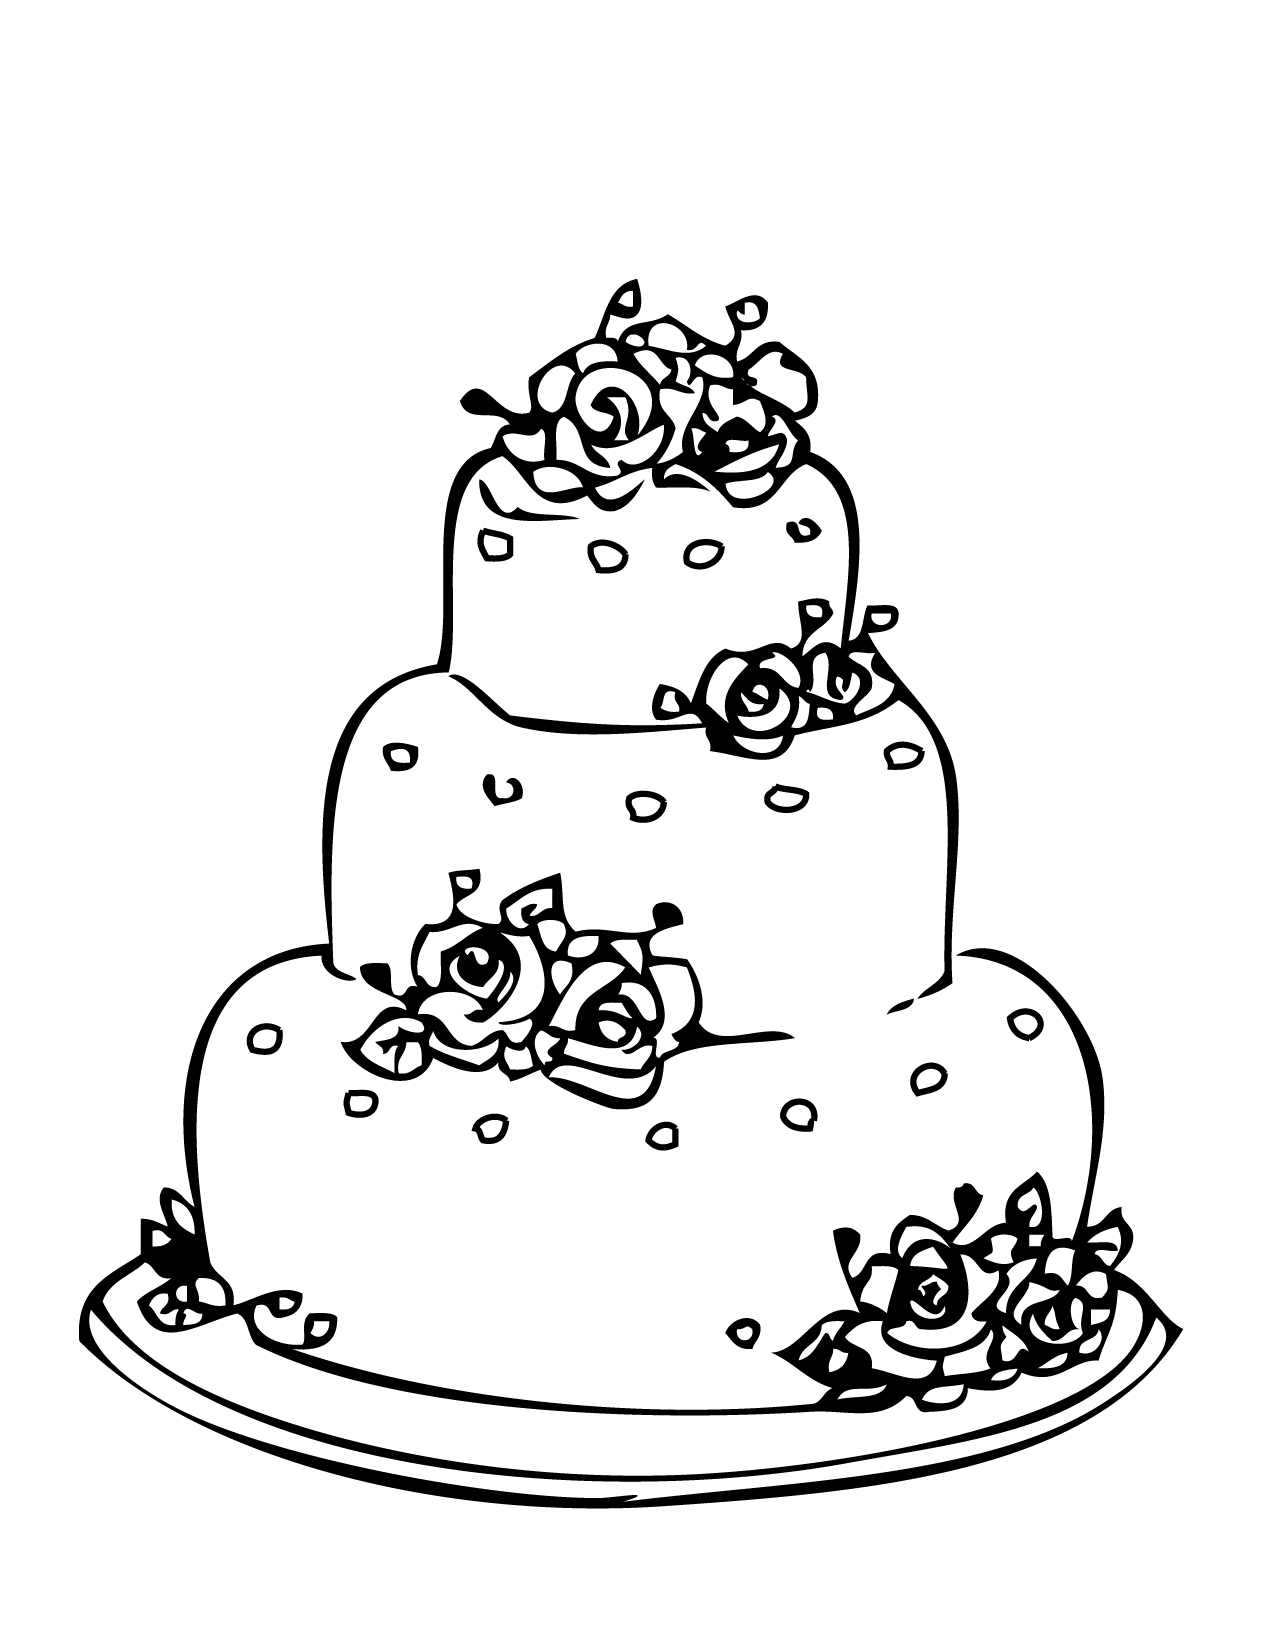 download wedding coloring pages 2 - Wedding Coloring Books